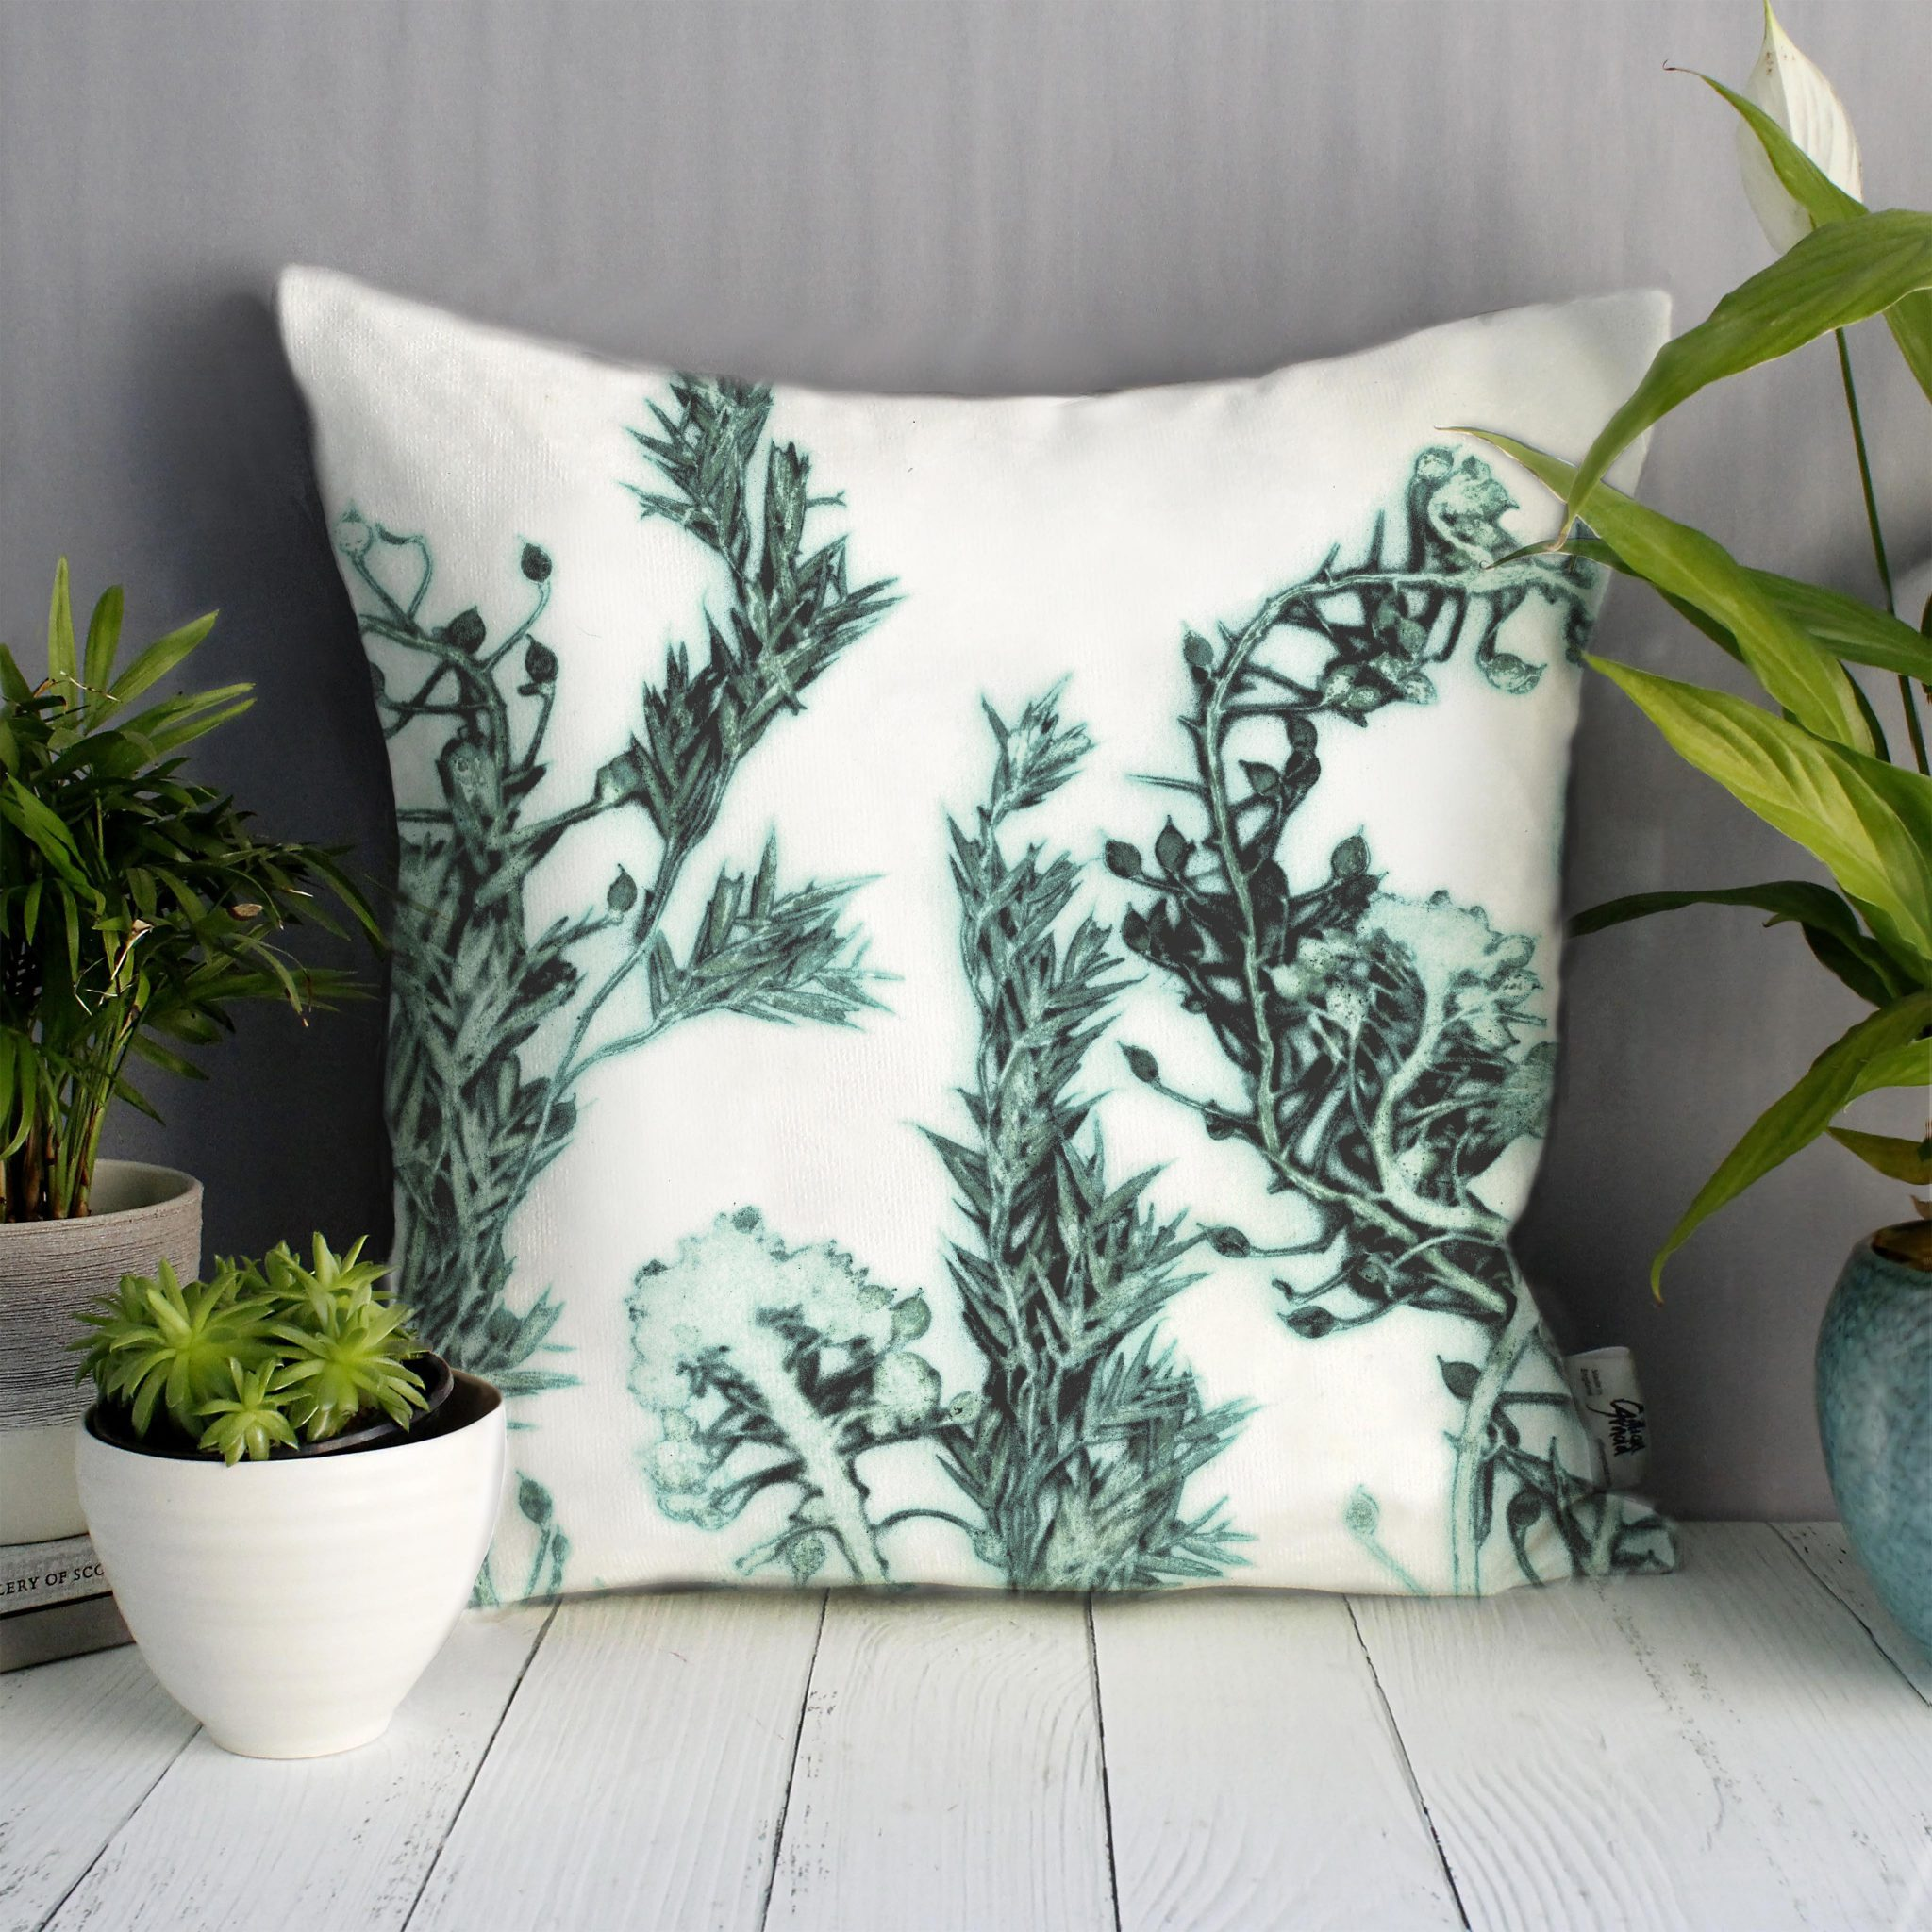 Green Landscape | White & Green Sofa Cushion Country Style